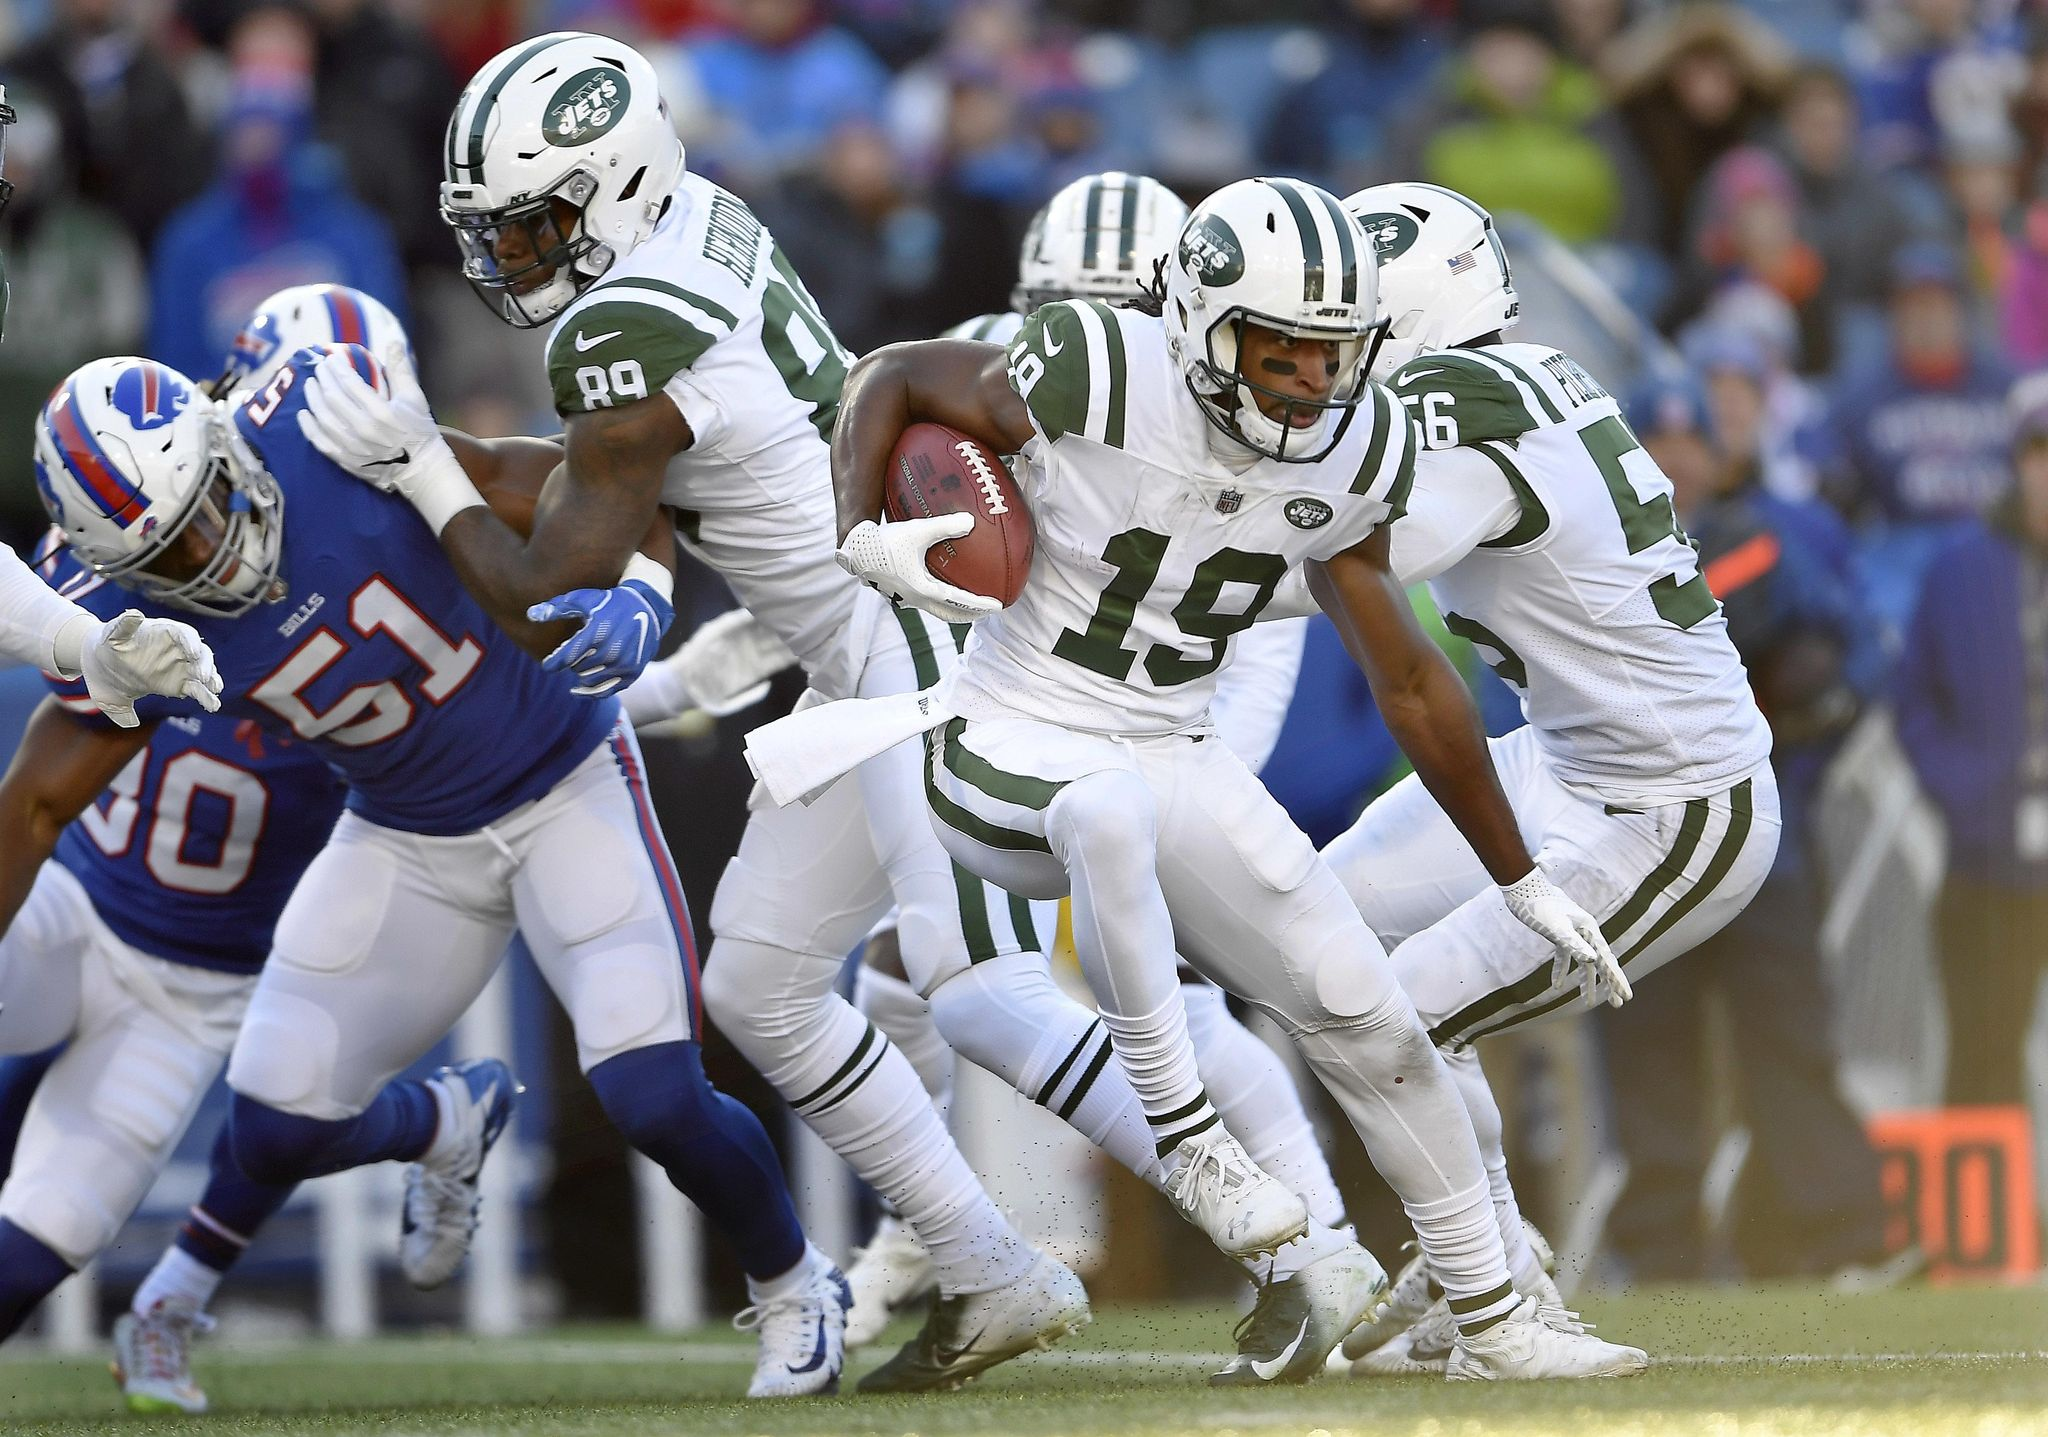 Jets_traveling_roberts_football_01441_s2048x1437